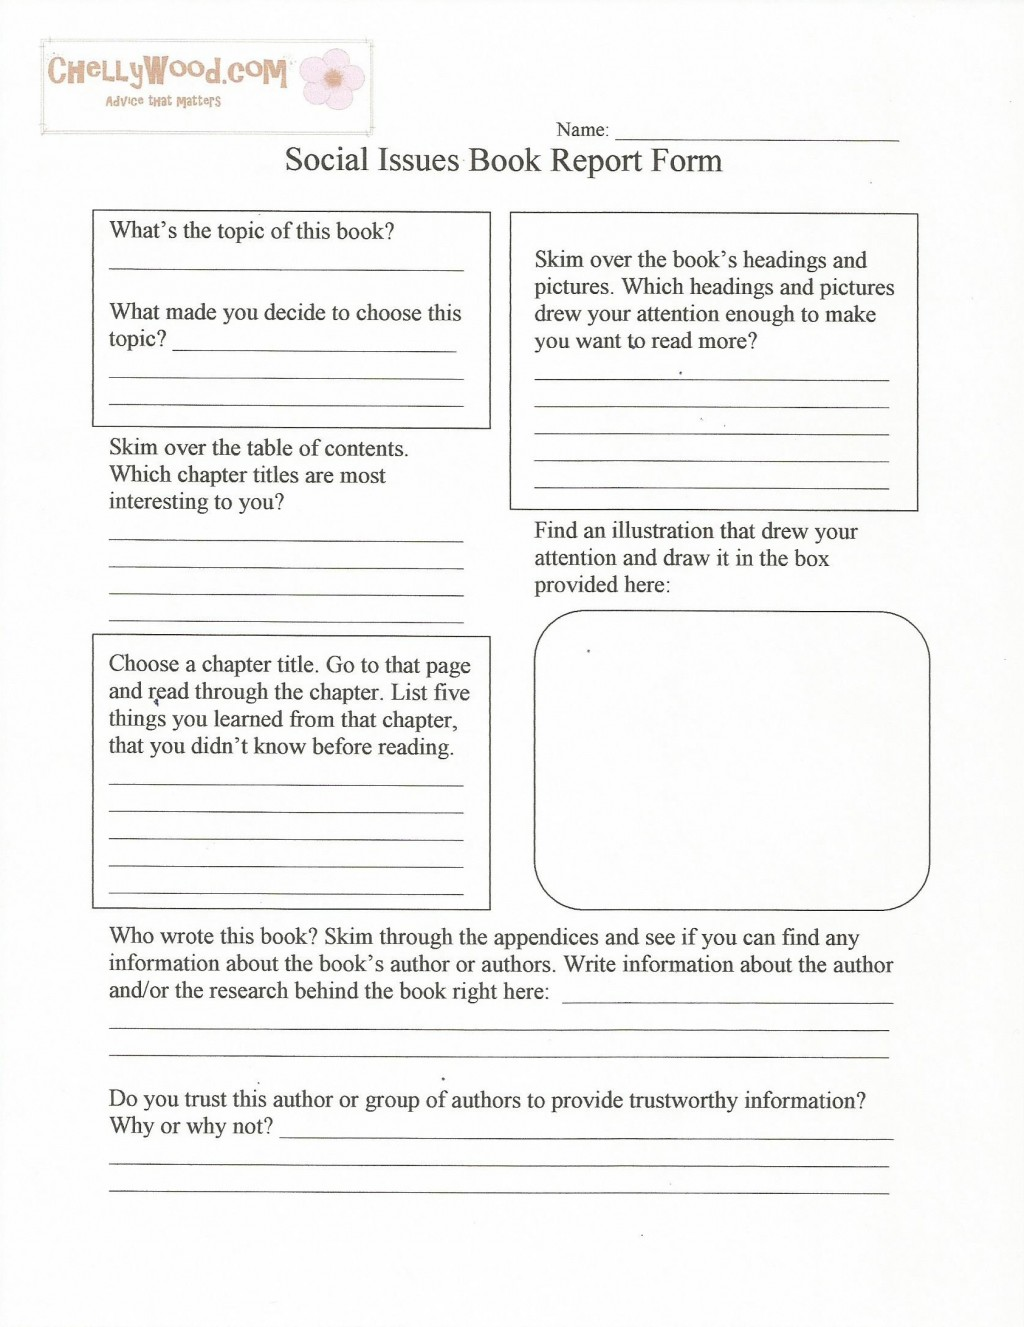 024 Essay Example Nonfiction Social Issues Book Report Form Pg Comes From My The How To Write Novel Name In An Unforgettable Topics America Paper Large